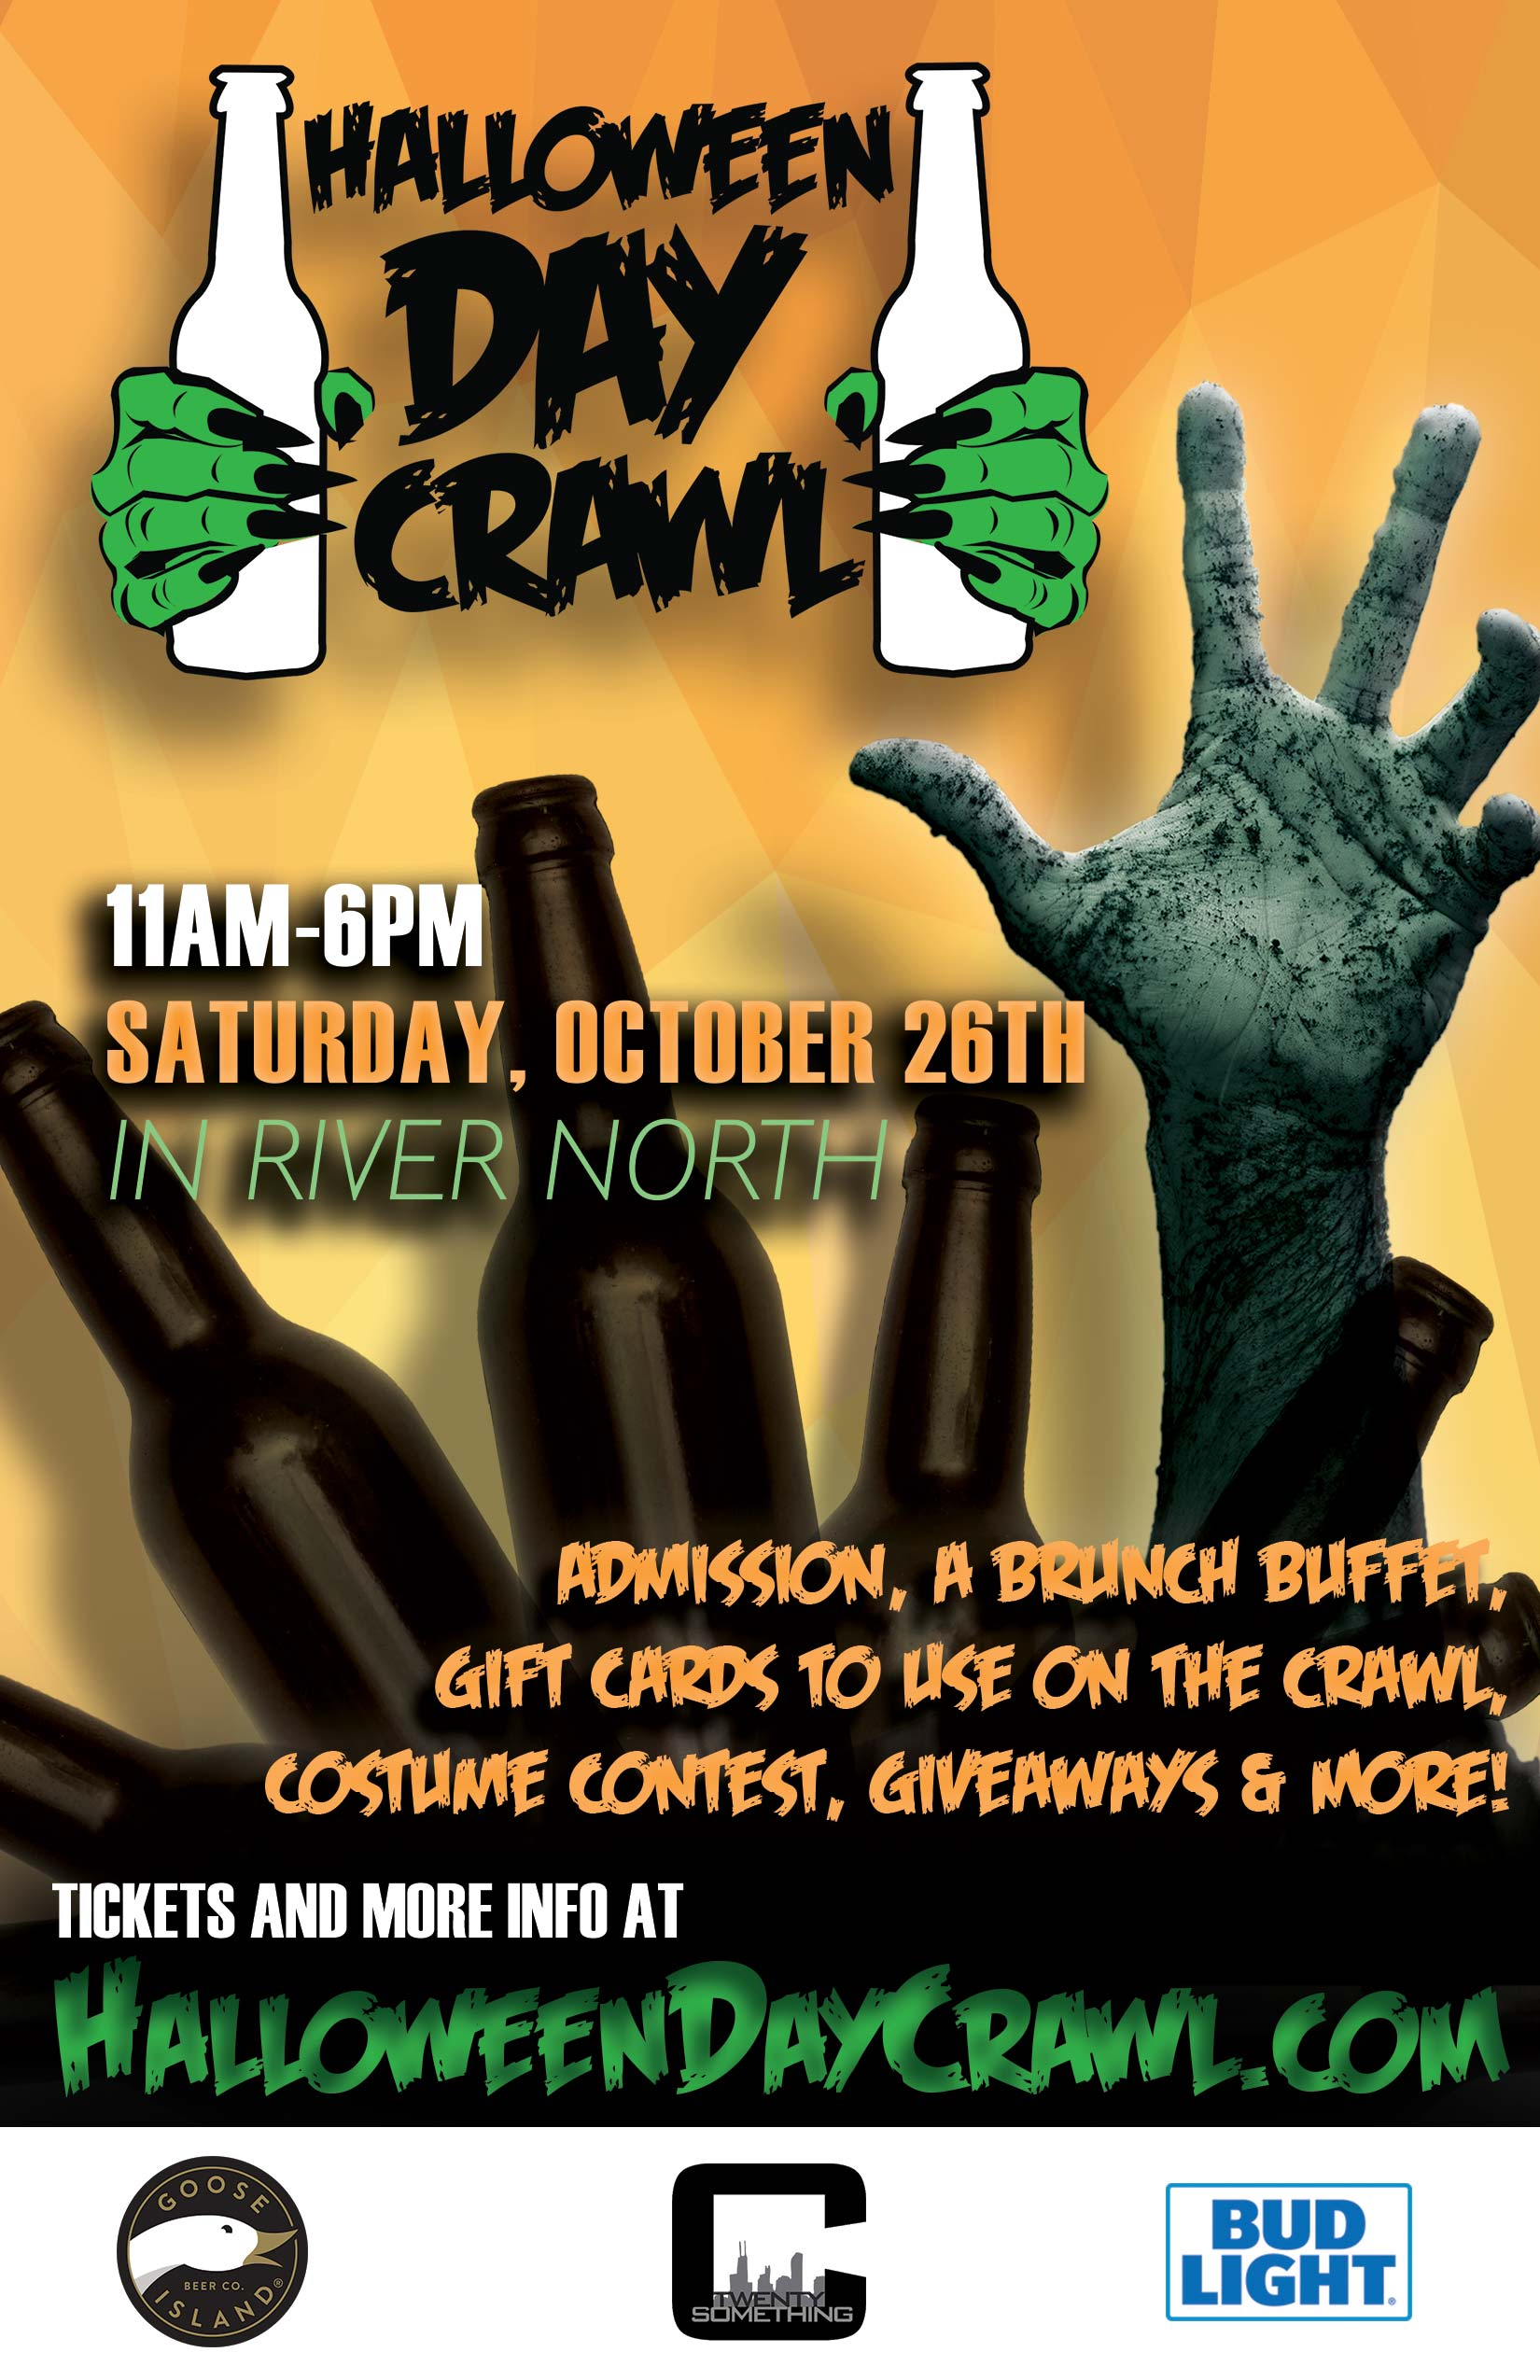 Halloween Day Crawl in Chicago - Tickets include Admission & a Free Brunch Buffet, Gift Cards to use on the Crawl, a Costume Contest, Giveaways & MORE!